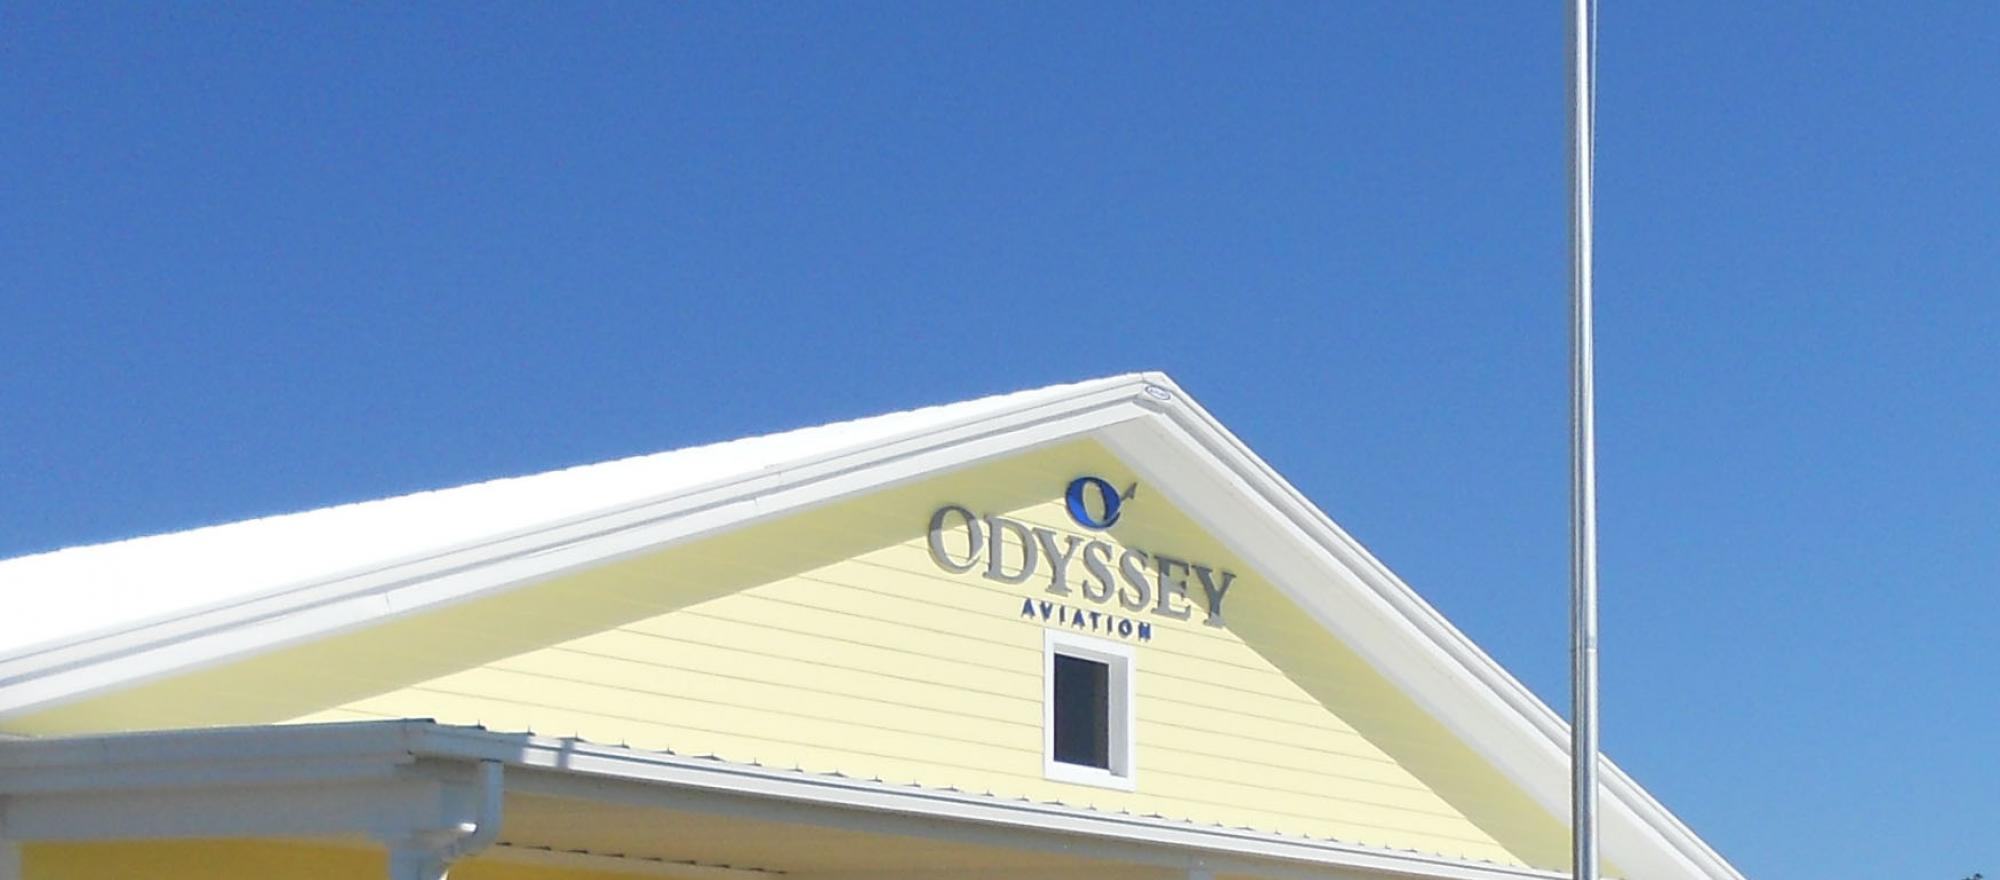 Odyssey Aviation's FBO in Nassau in the Bahsmsd